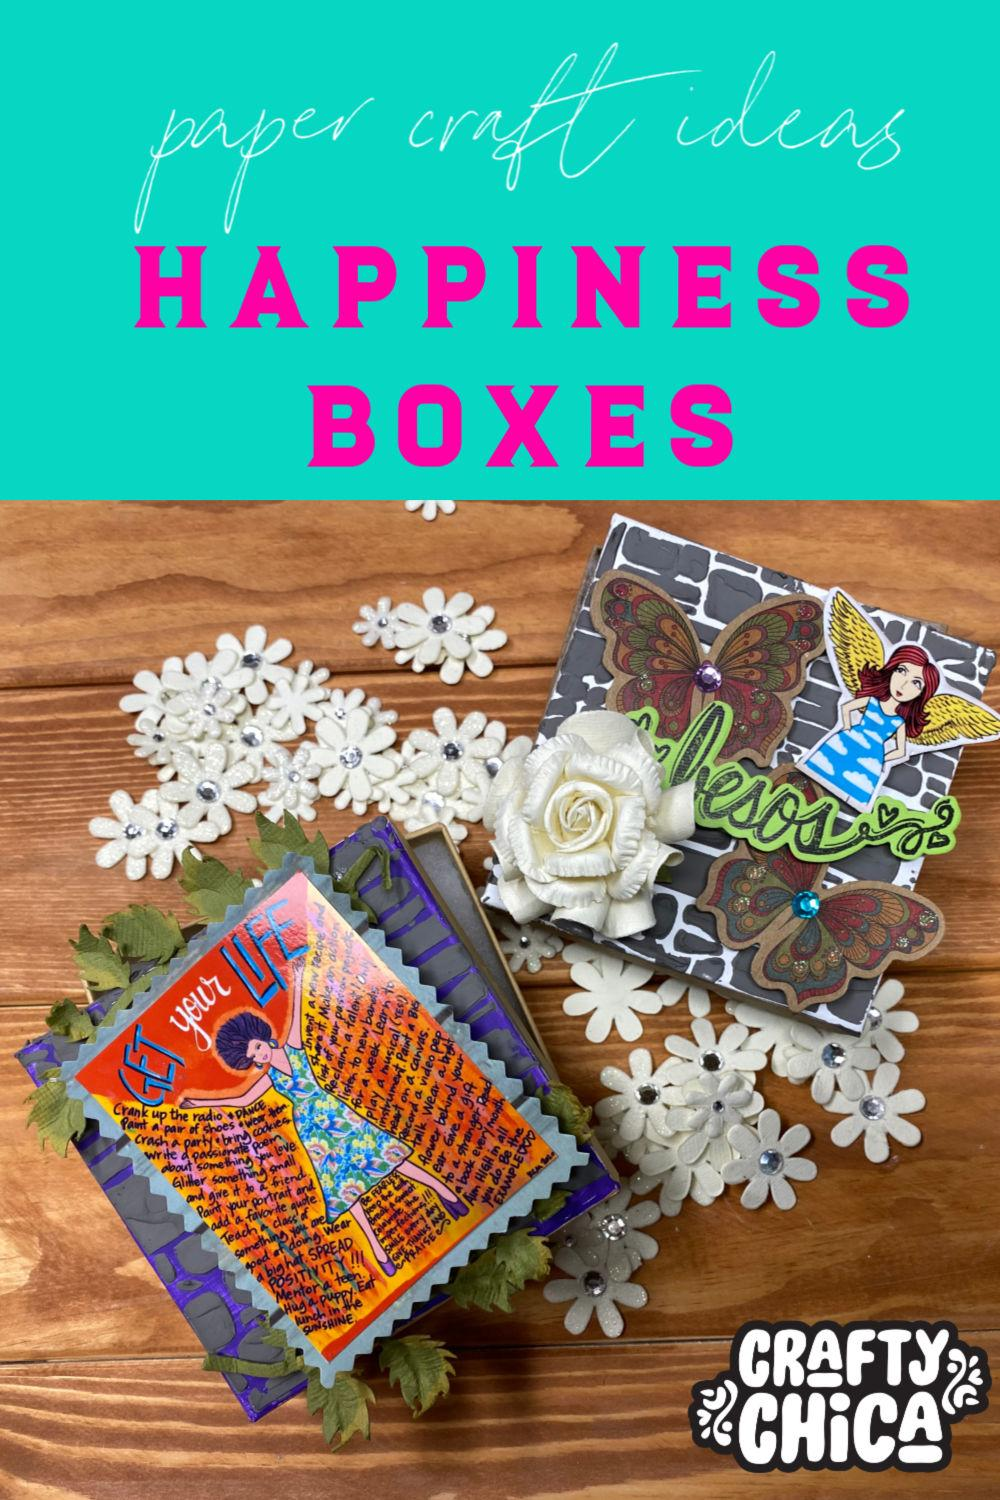 How to make happiness boxes #craftychica #papercrafting